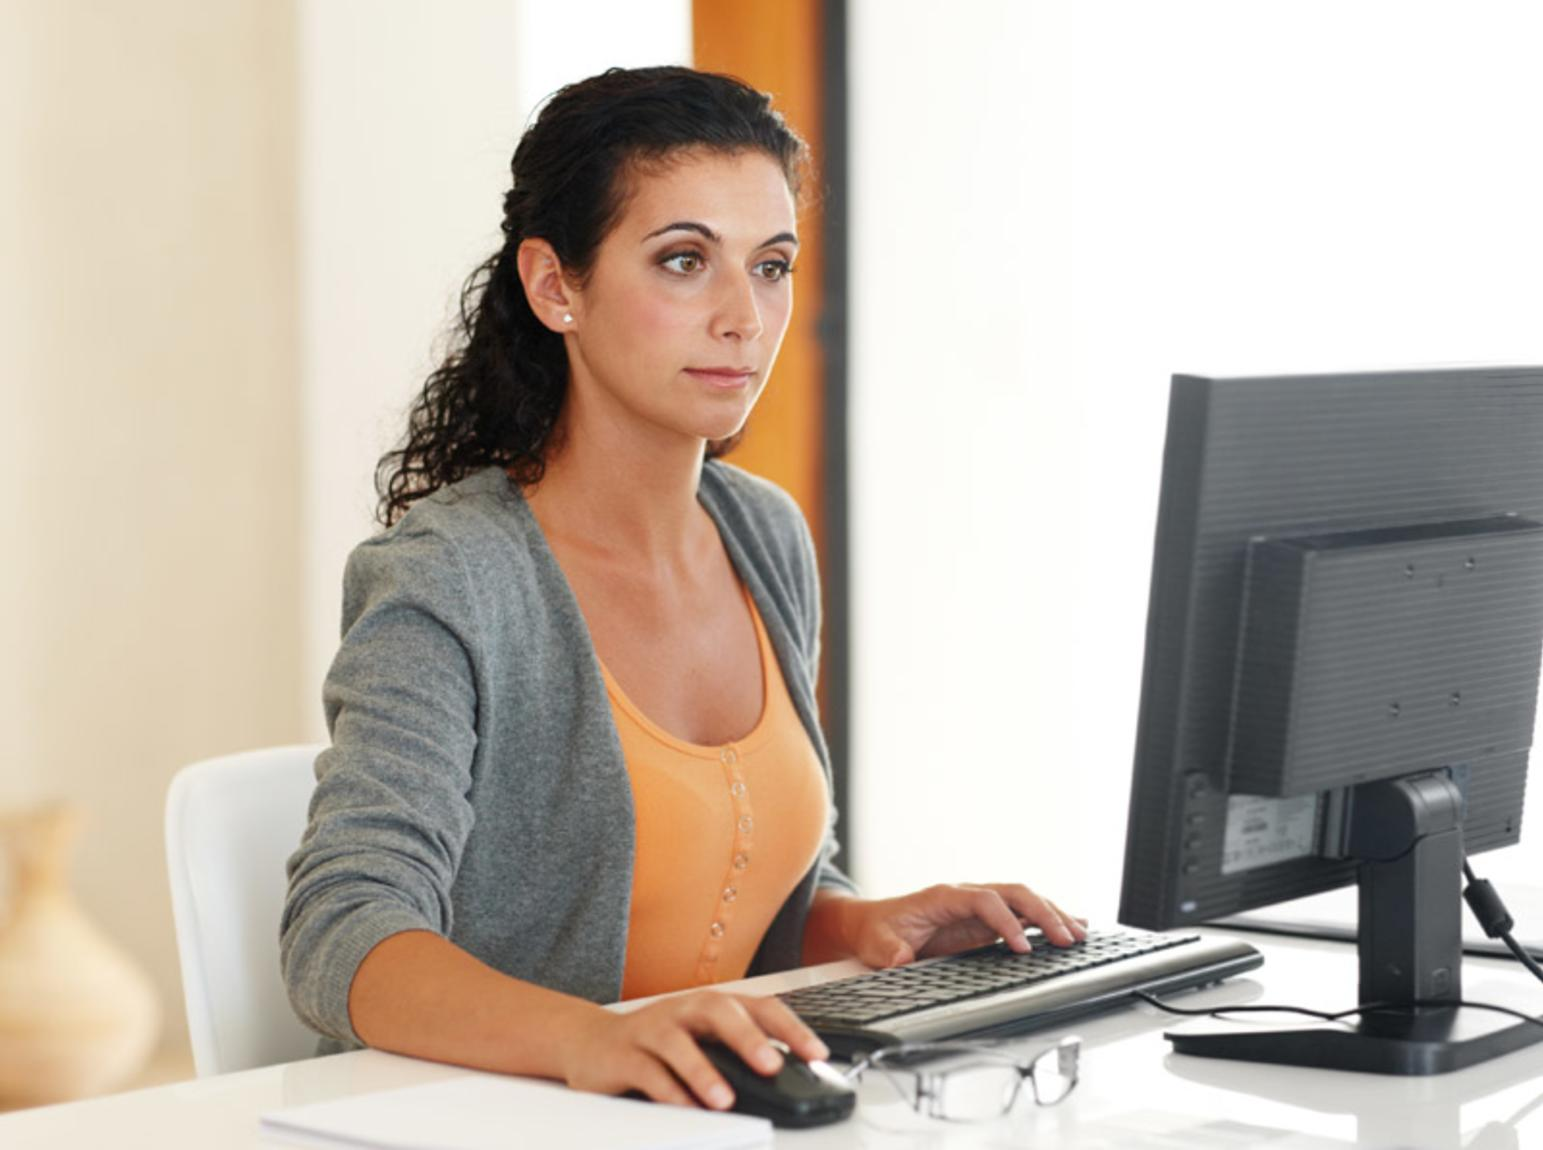 Woman sitting a desk working on a computer